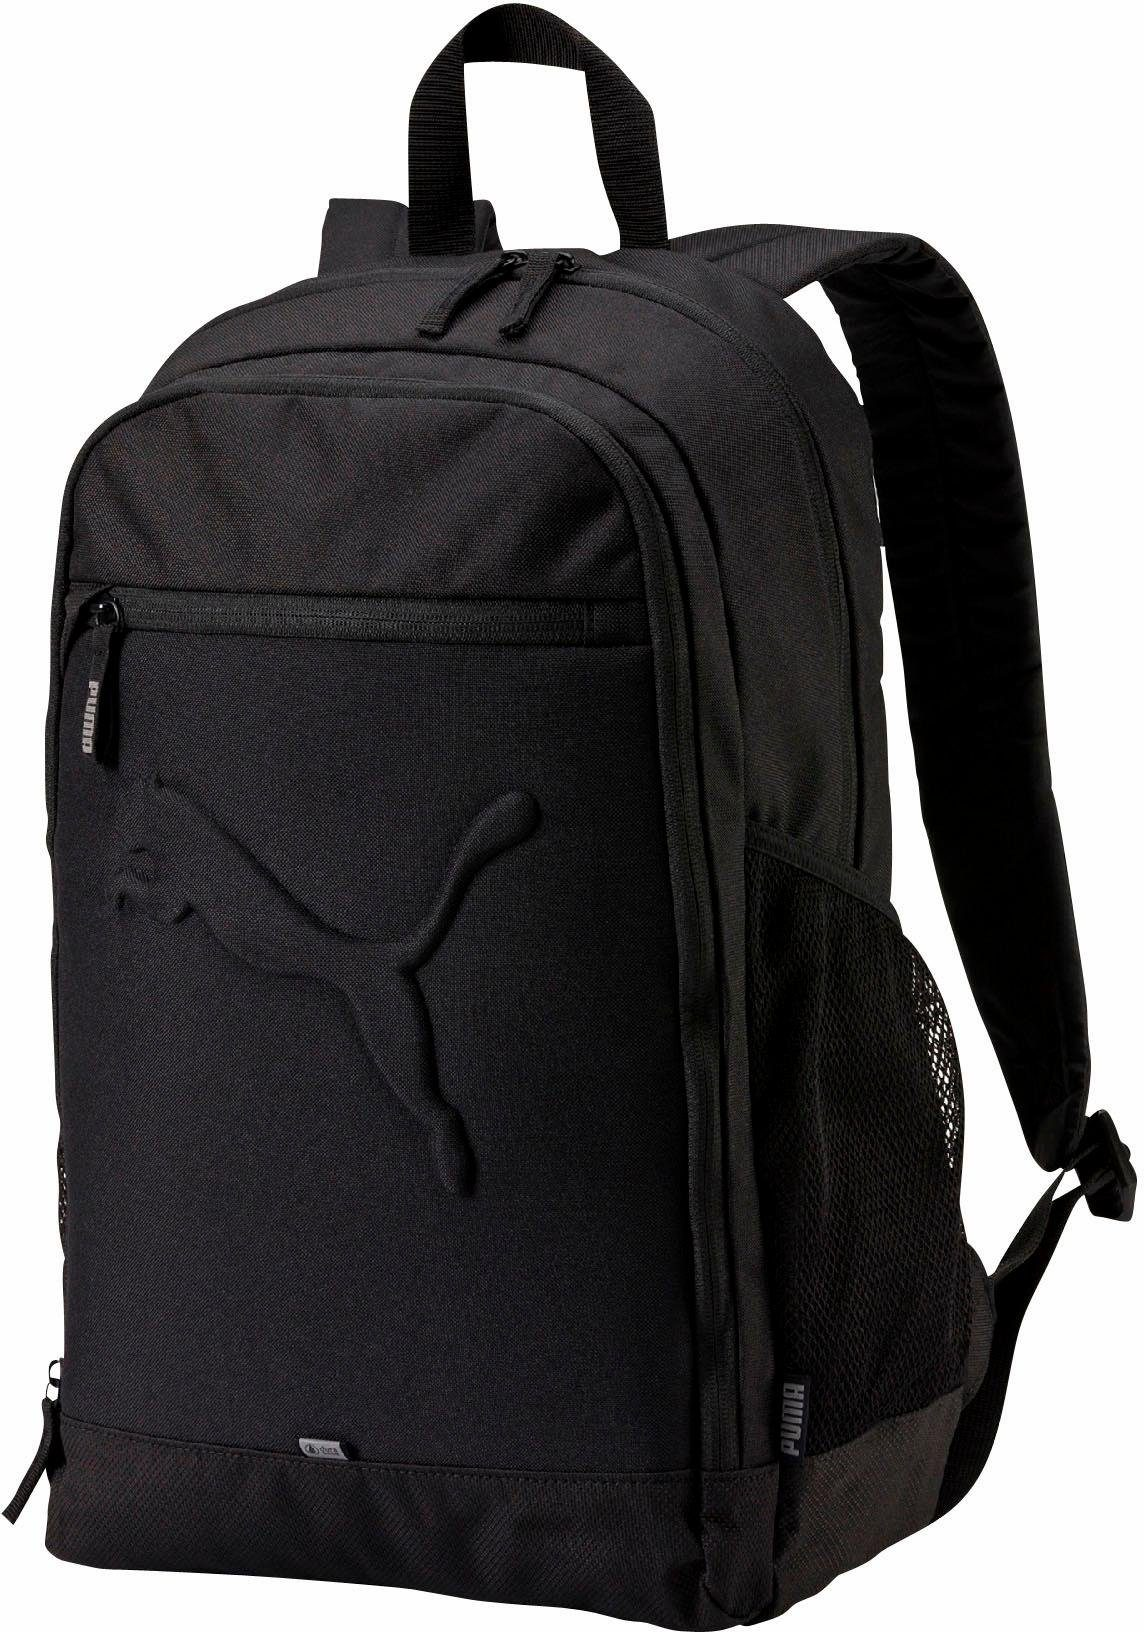 PUMA Sportrucksack »BUZZ BACKPACK«